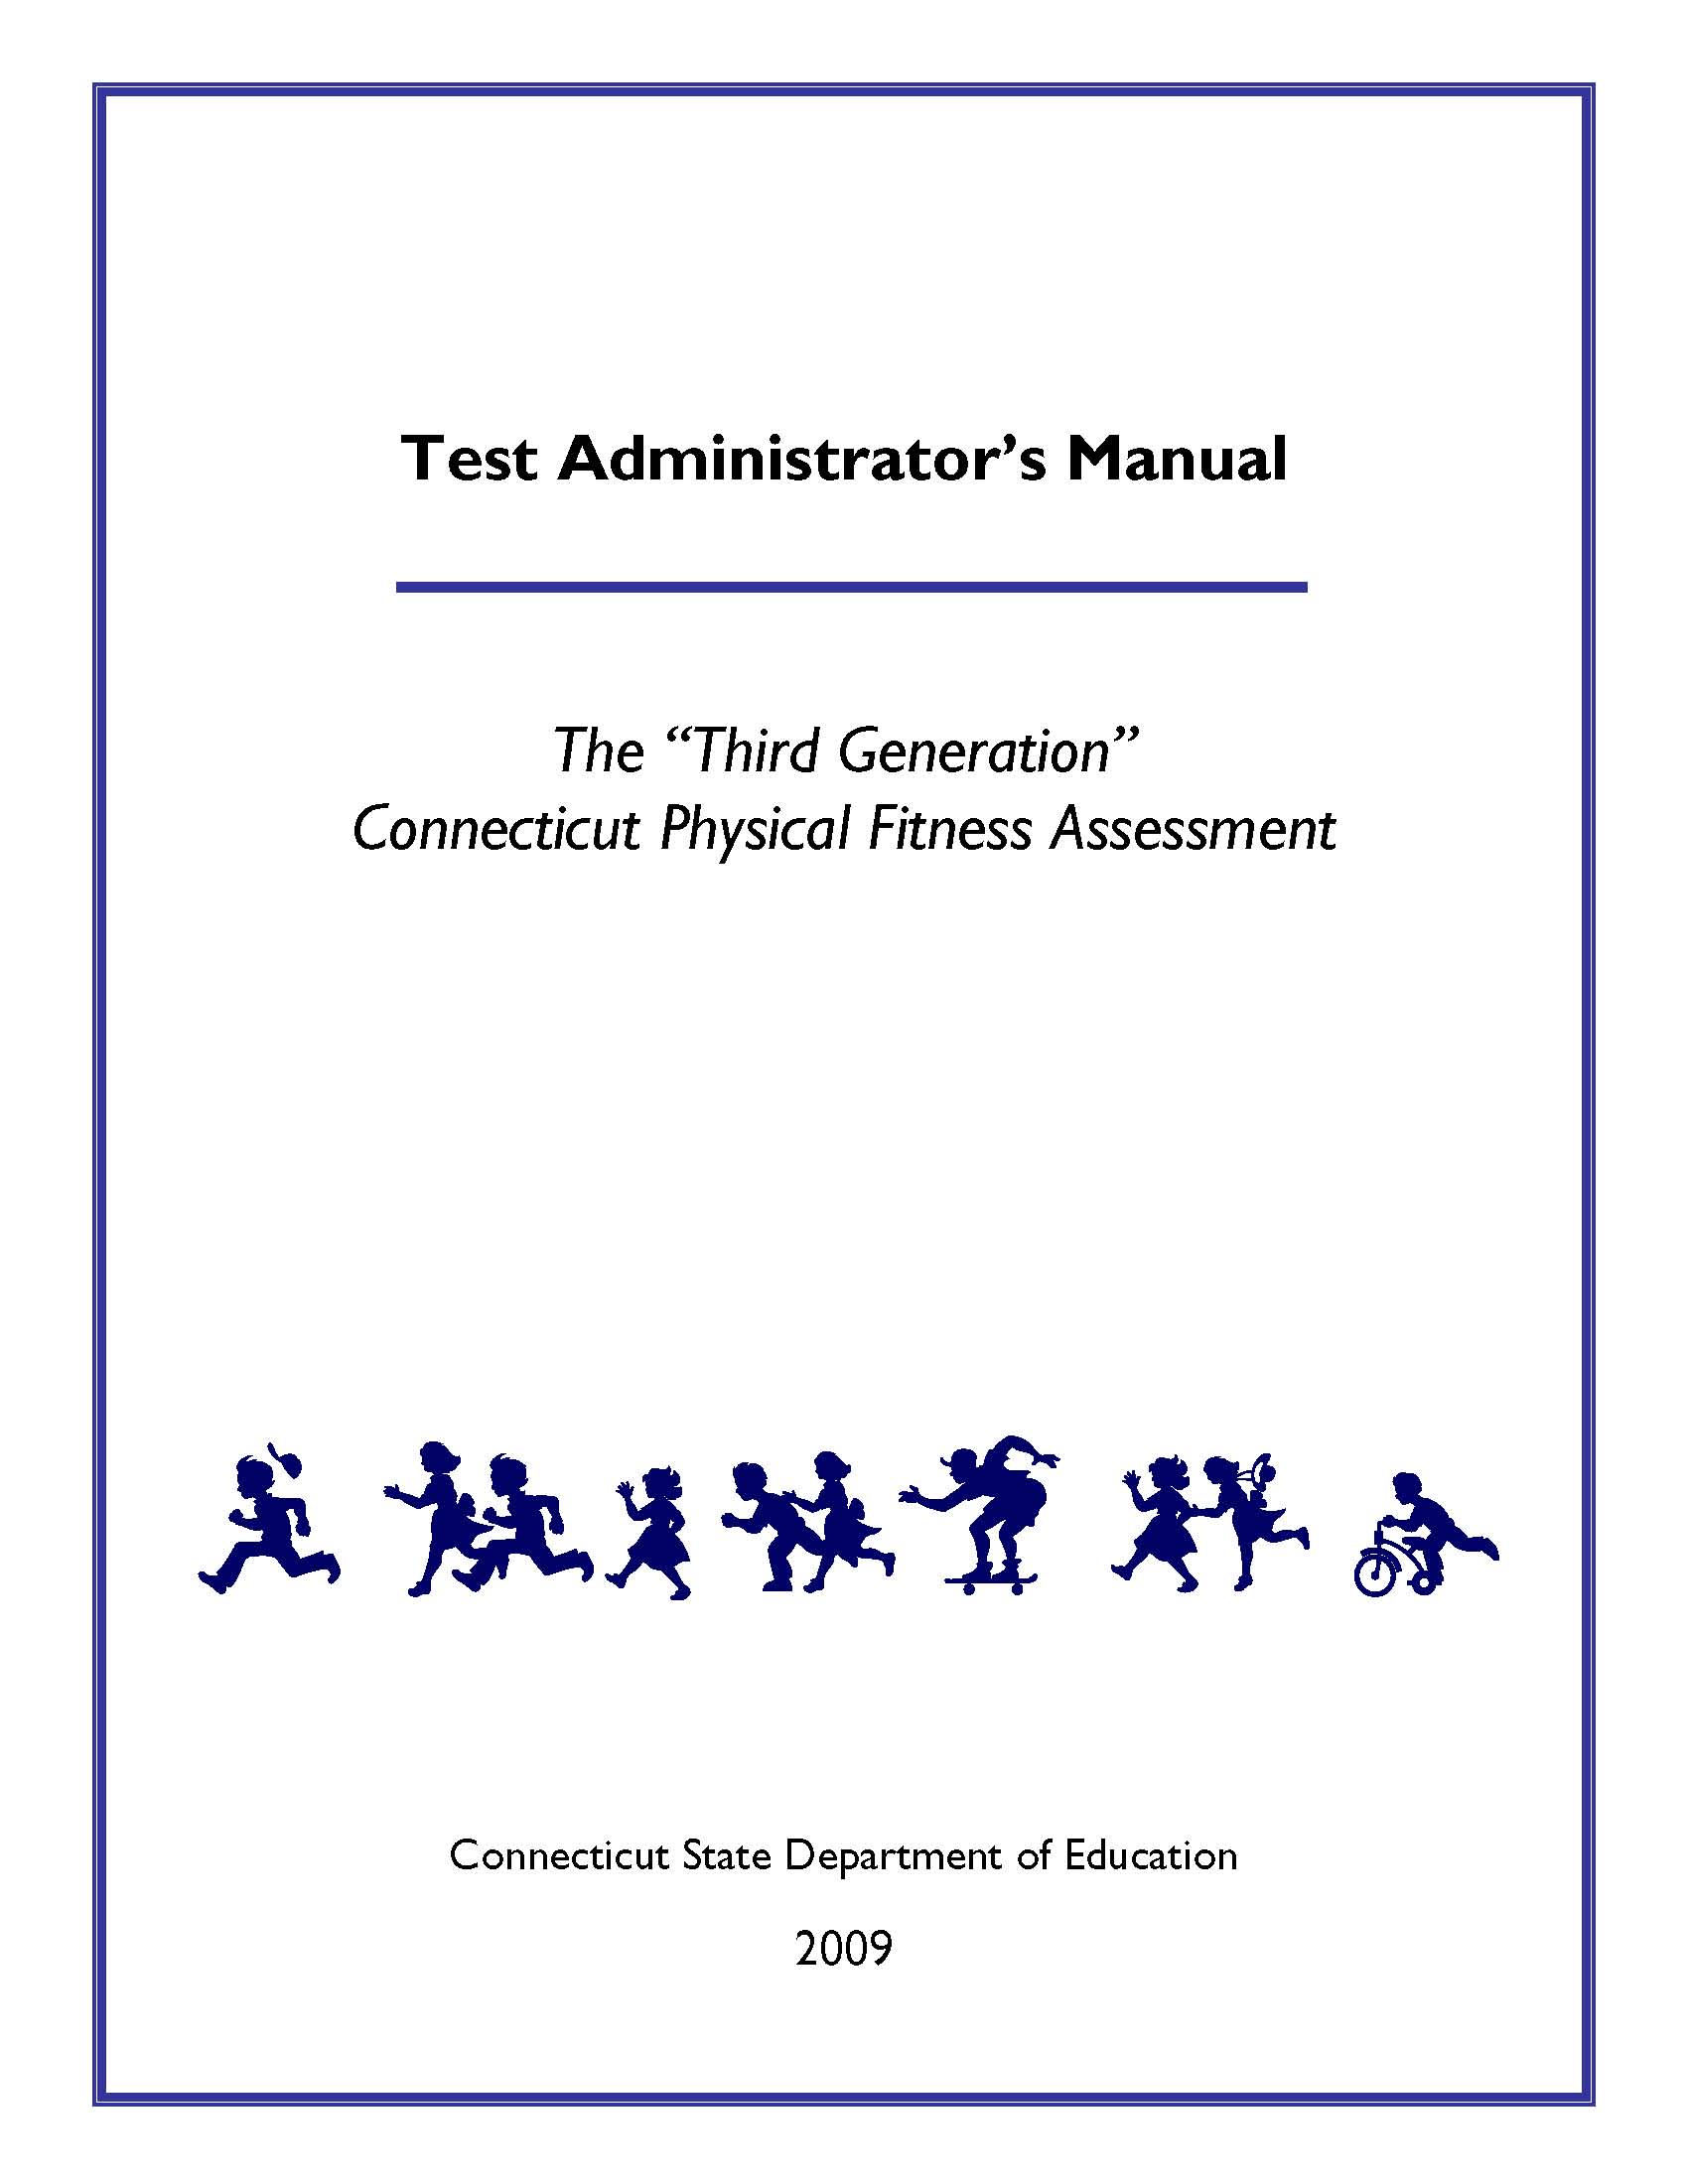 Fitness Assessment Test Administrator's Manual Cover